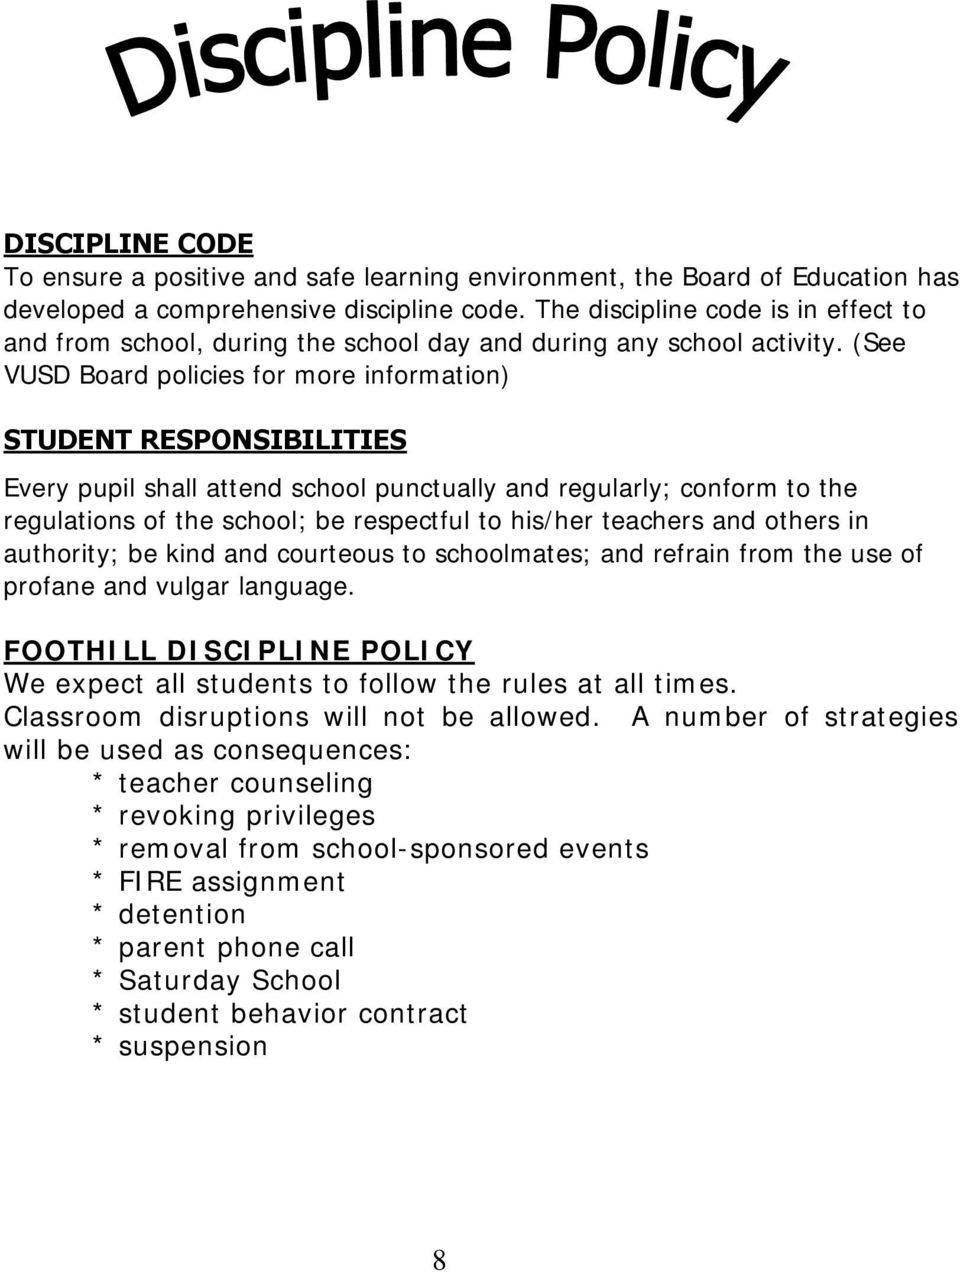 (See VUSD Board policies for more information) STUDENT RESPONSIBILITIES Every pupil shall attend school punctually and regularly; conform to the regulations of the school; be respectful to his/her